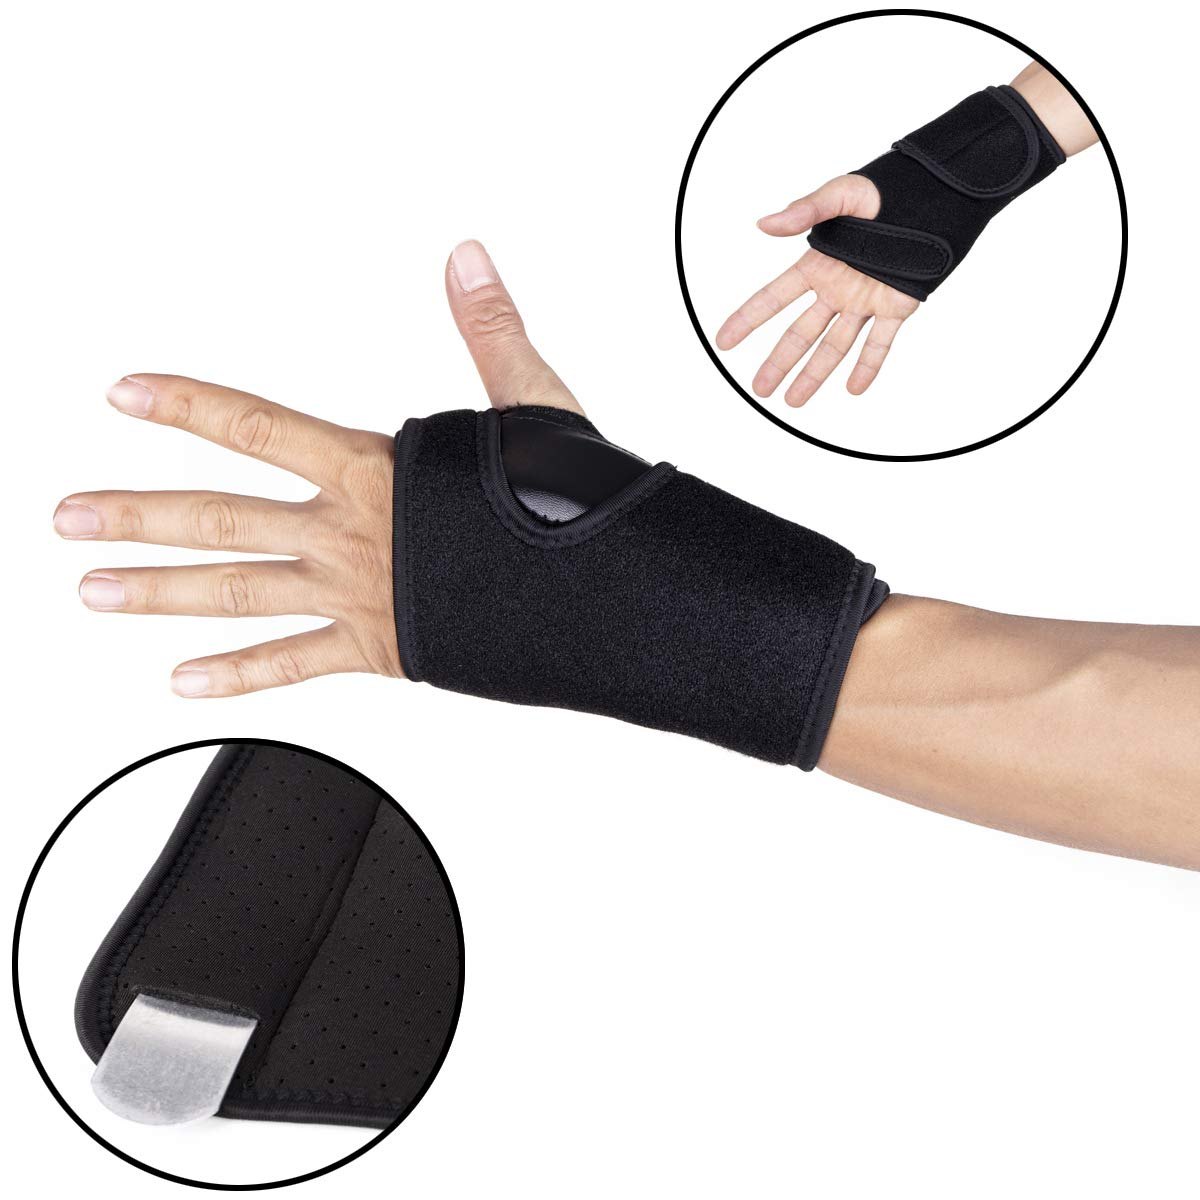 DODOING 1Pc/2Pcs Adjustable Wristband Steel Wrist Brace Hand Wrist Support Wrap with Removable Splint Fractures Carpal Tunnel Sport Sprain Wristbands Gym Fitness